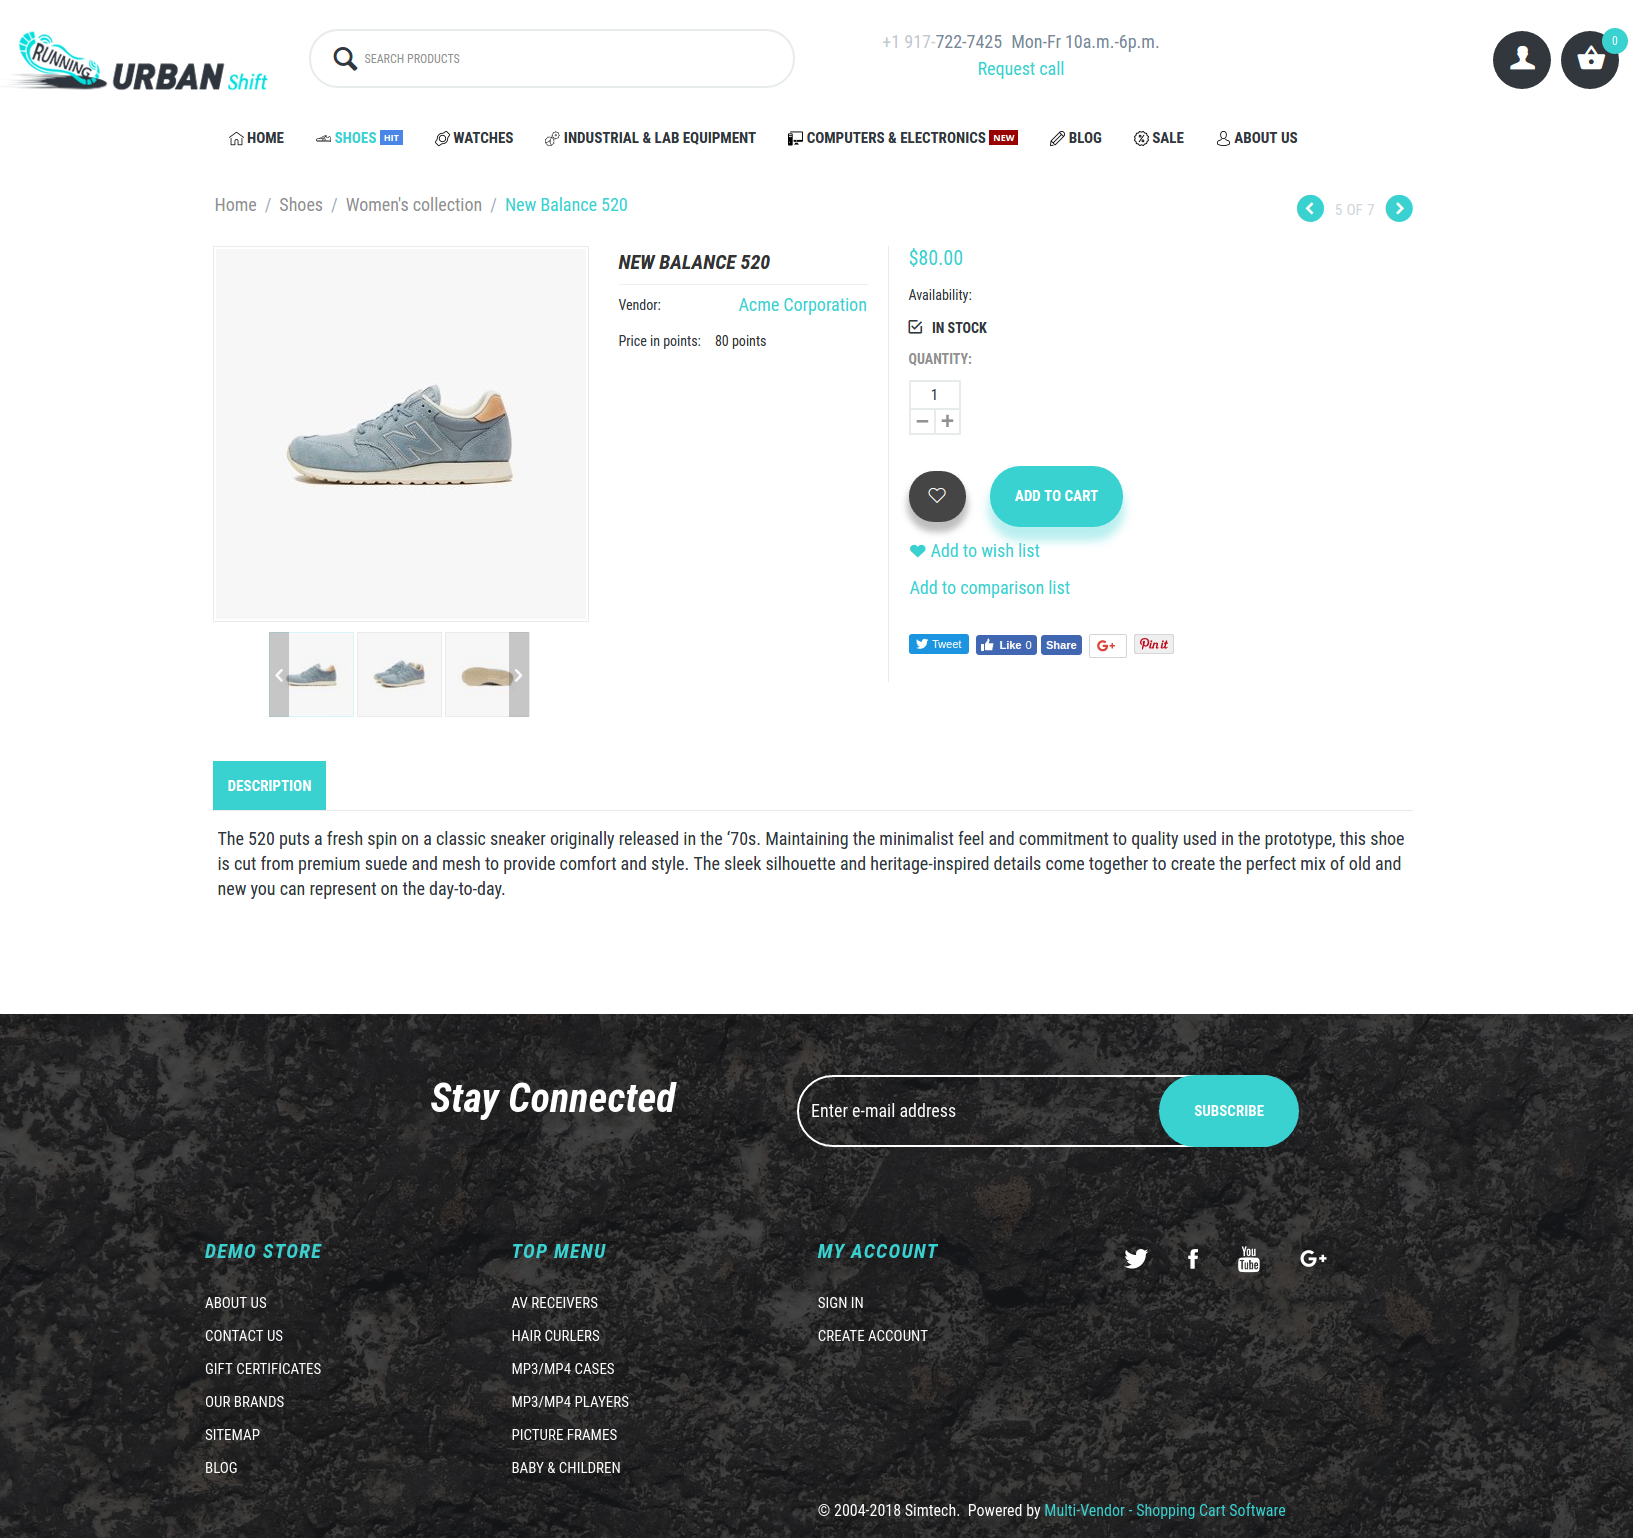 urban-shift-product-page